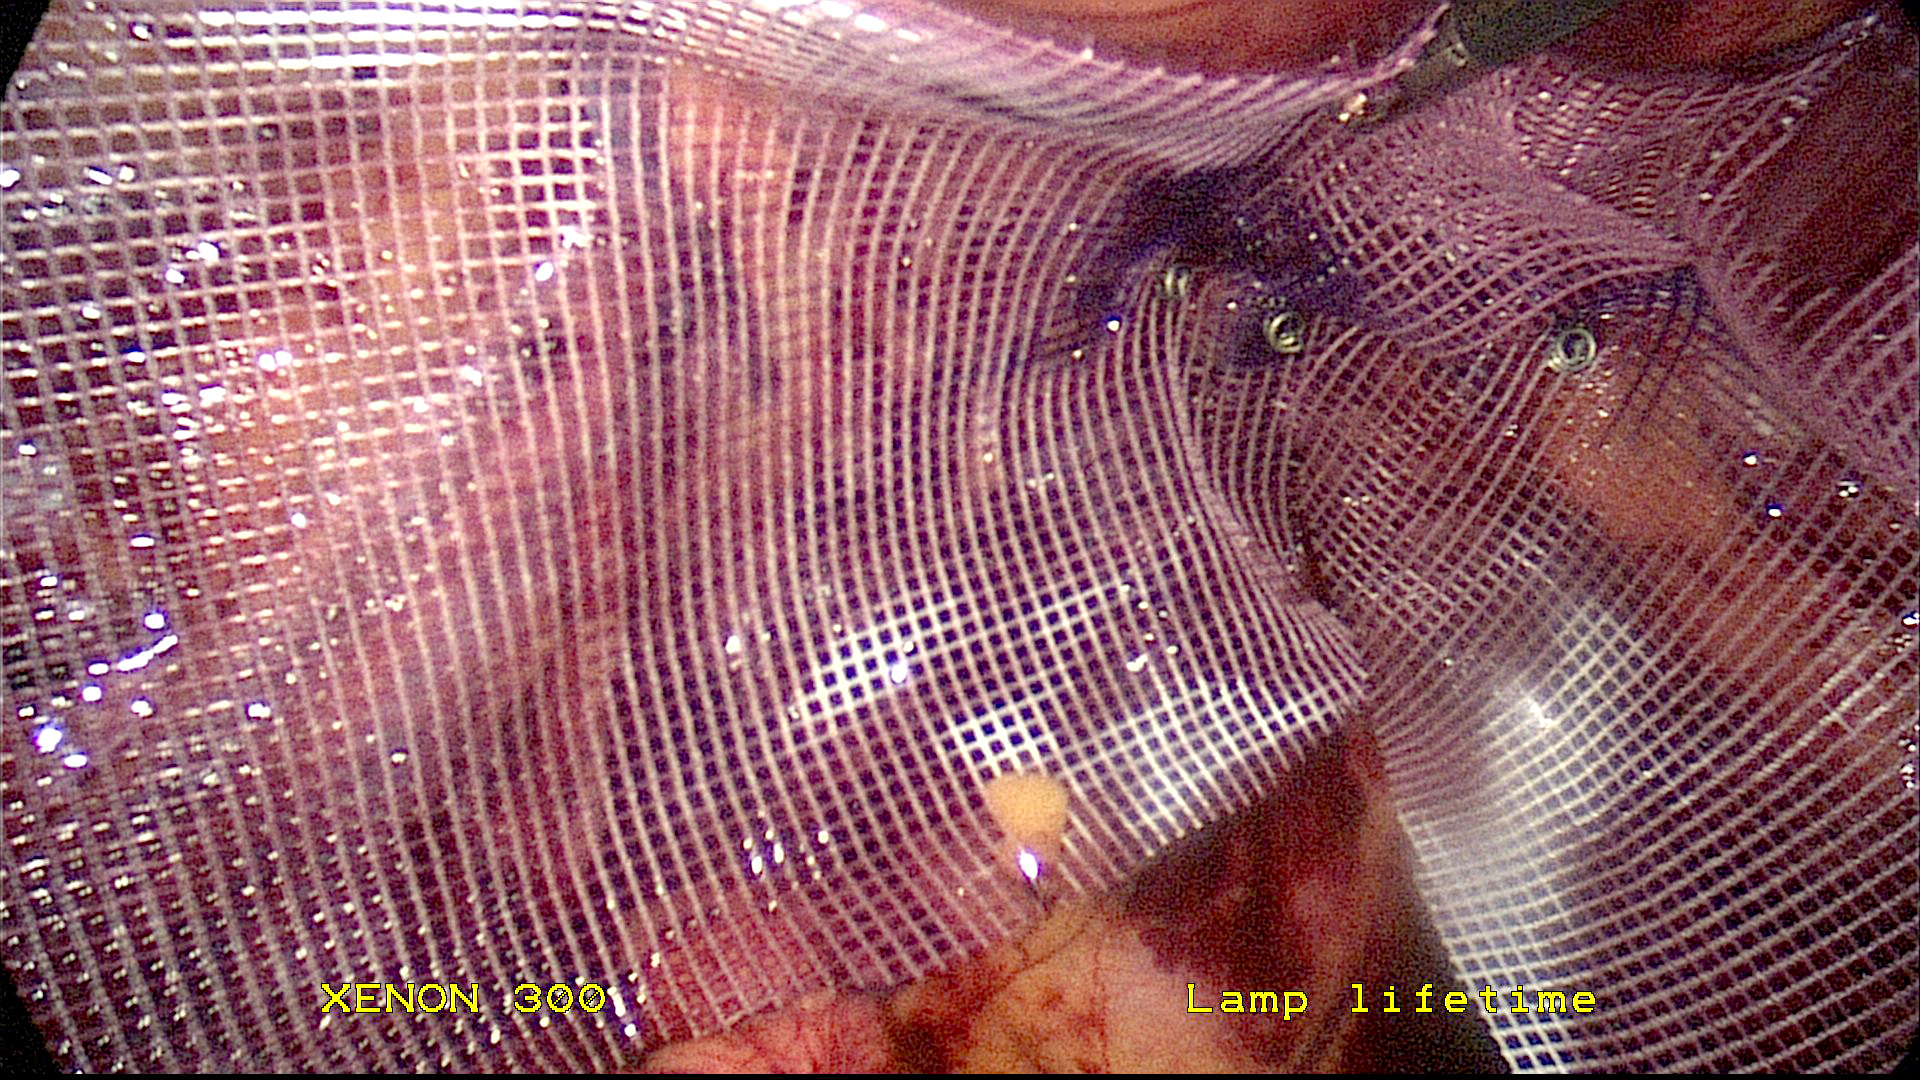 Bilateral inguinal hernia repair with TEPP mesh placement.